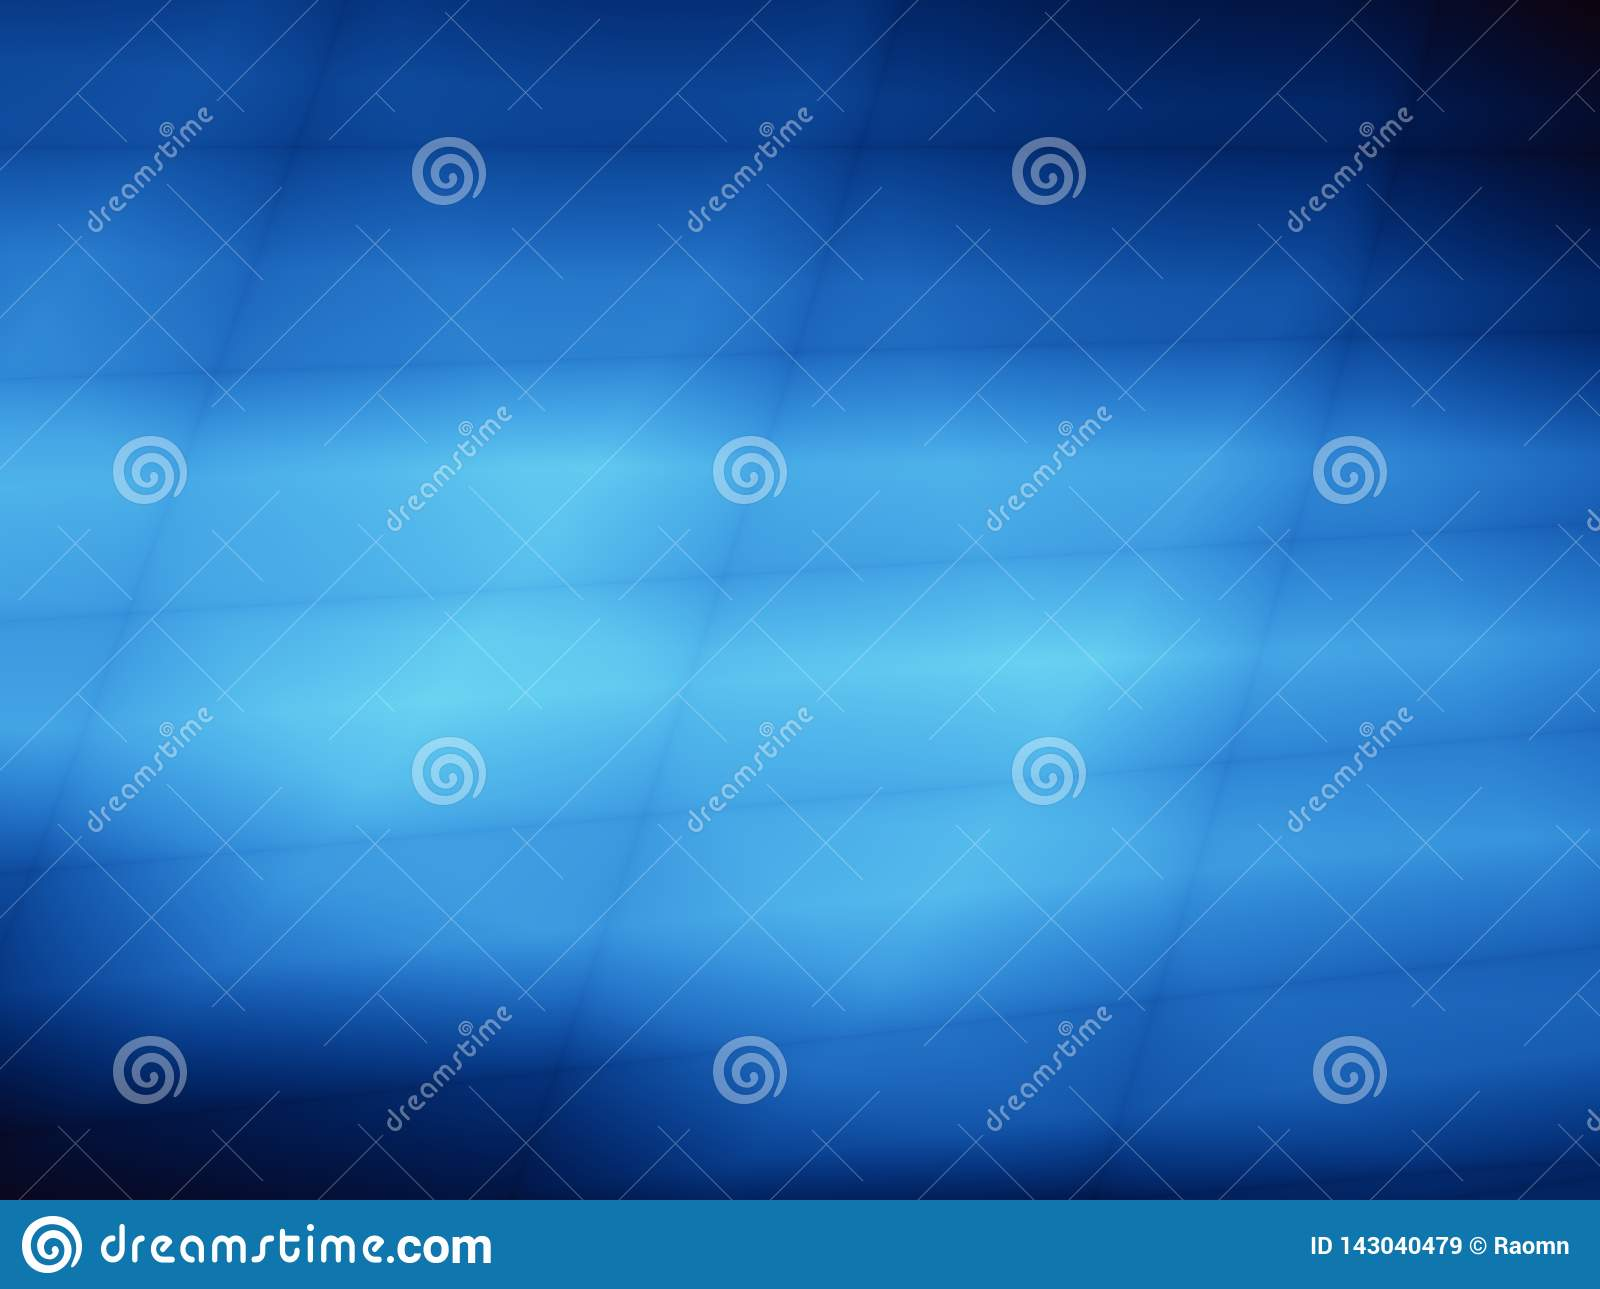 Blue dark modern deep graphic website pattern